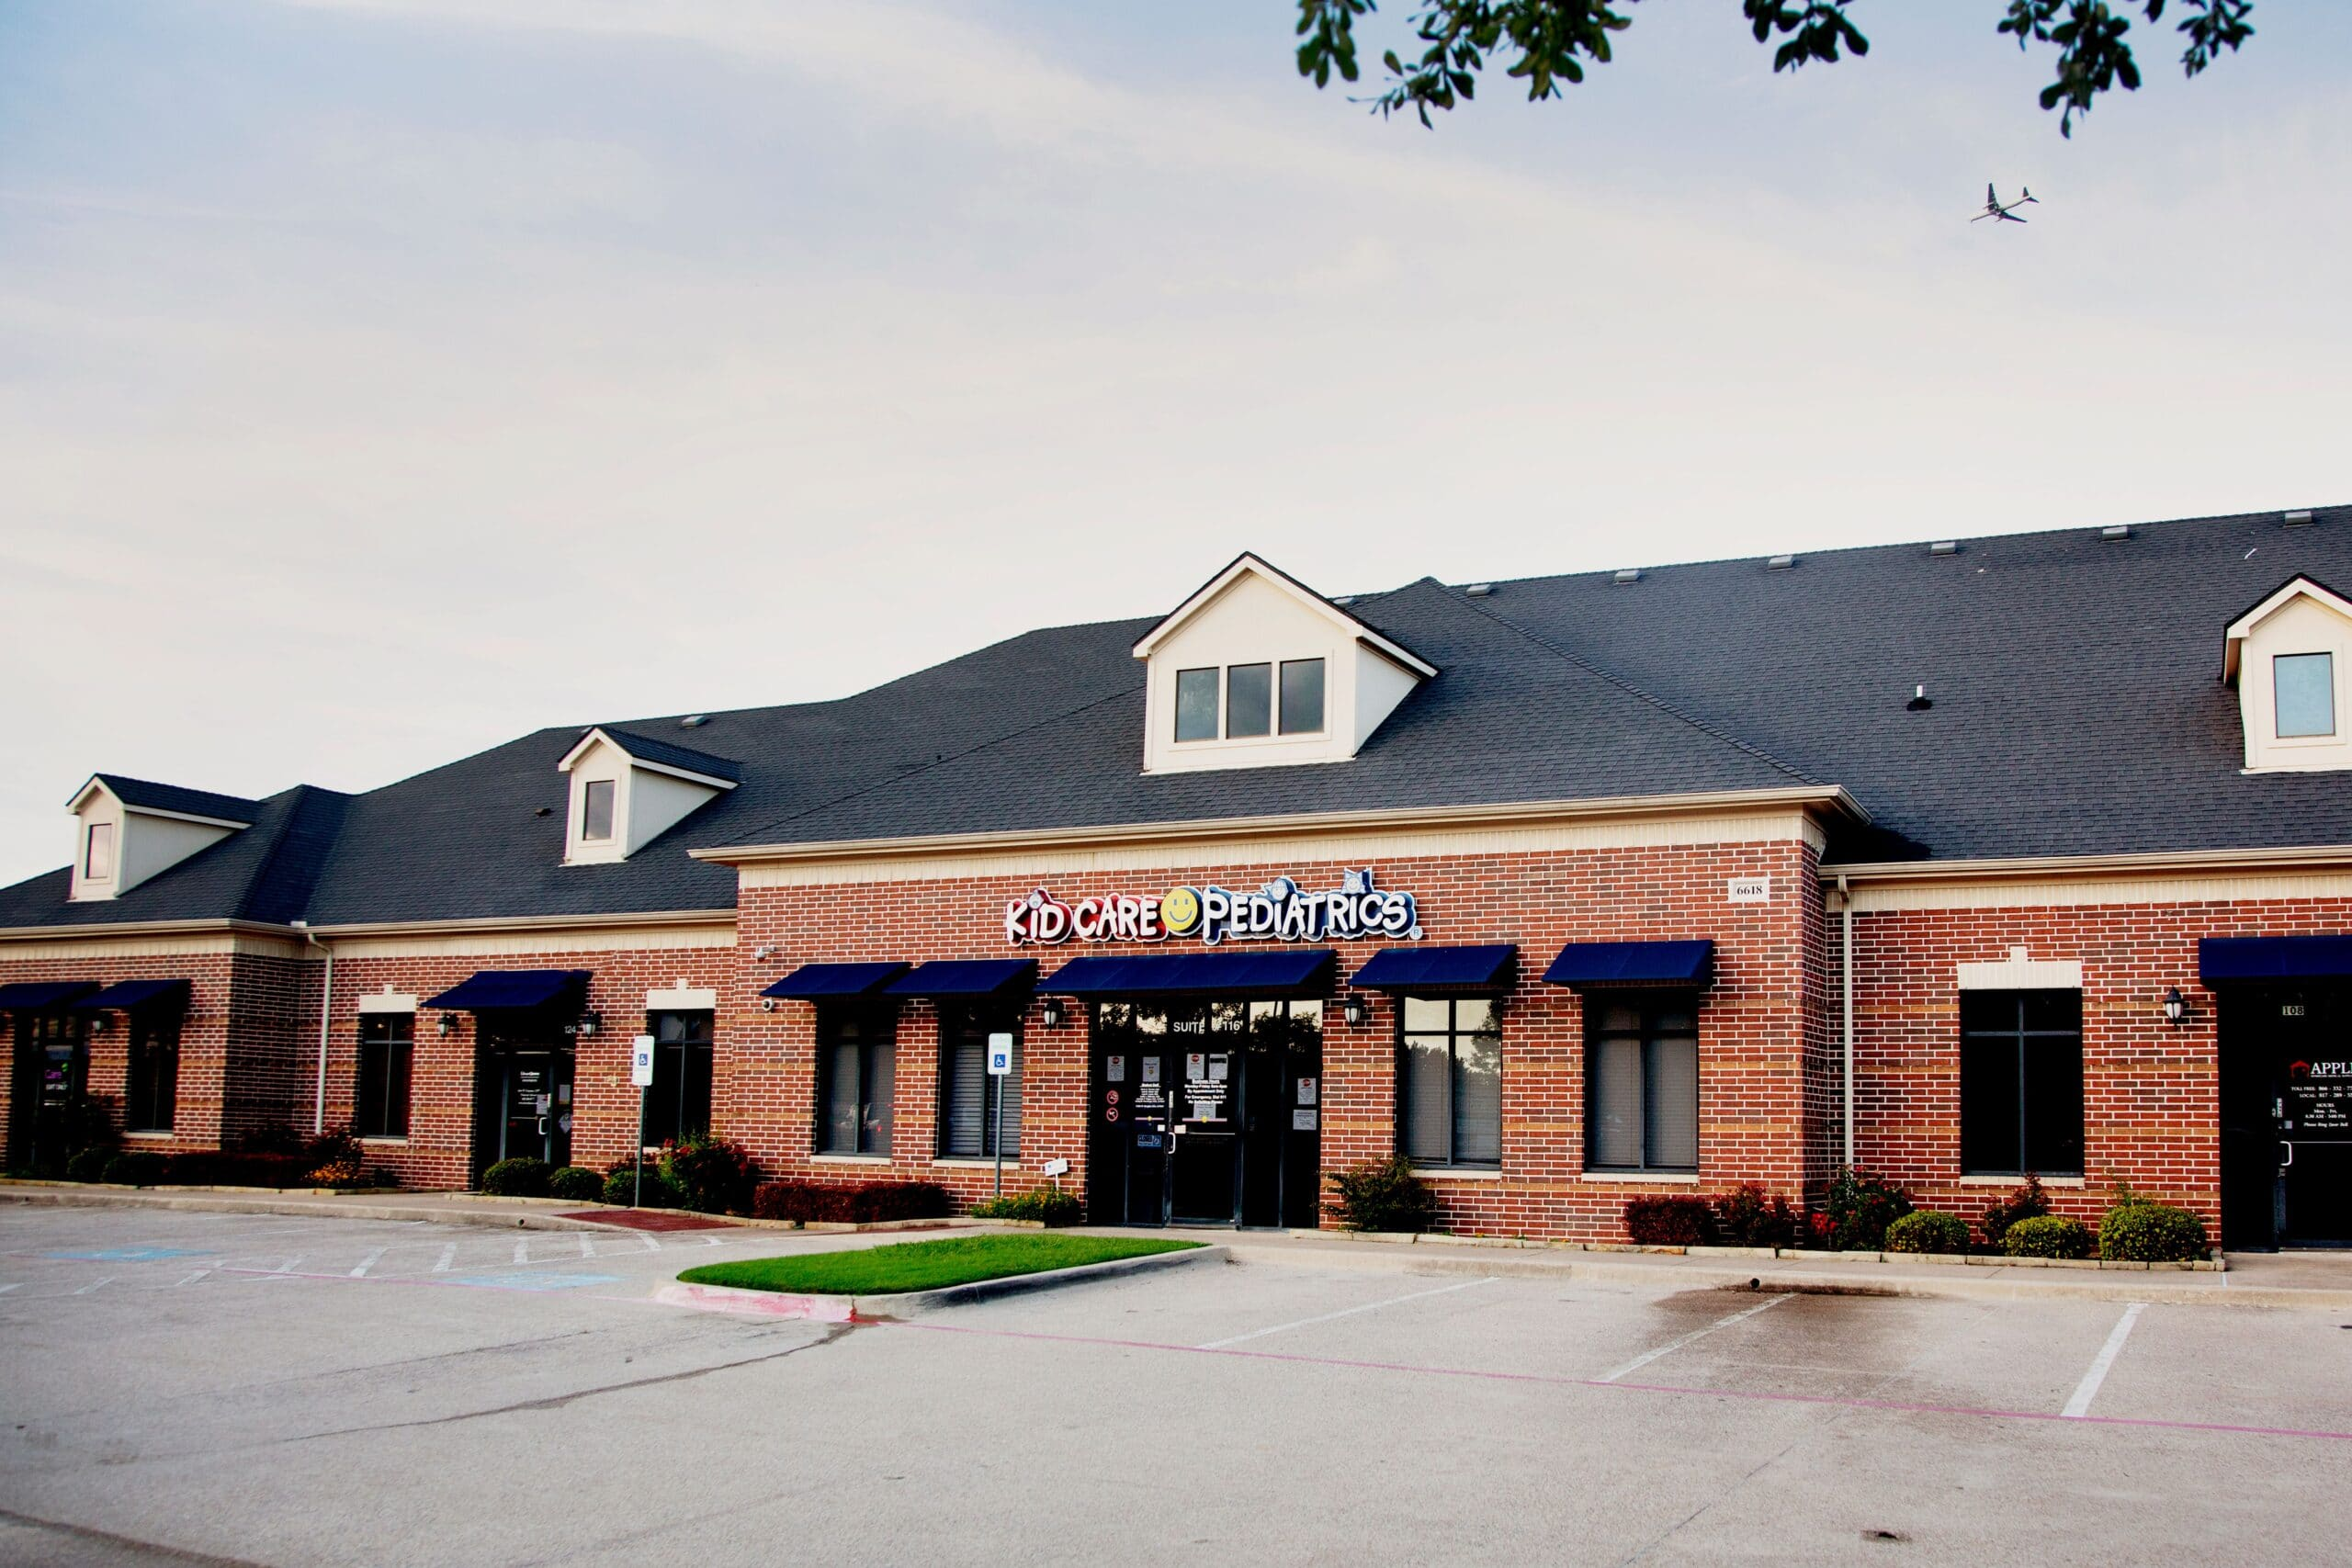 Kid Care Pediatrics office located in Fort Worth, Texas